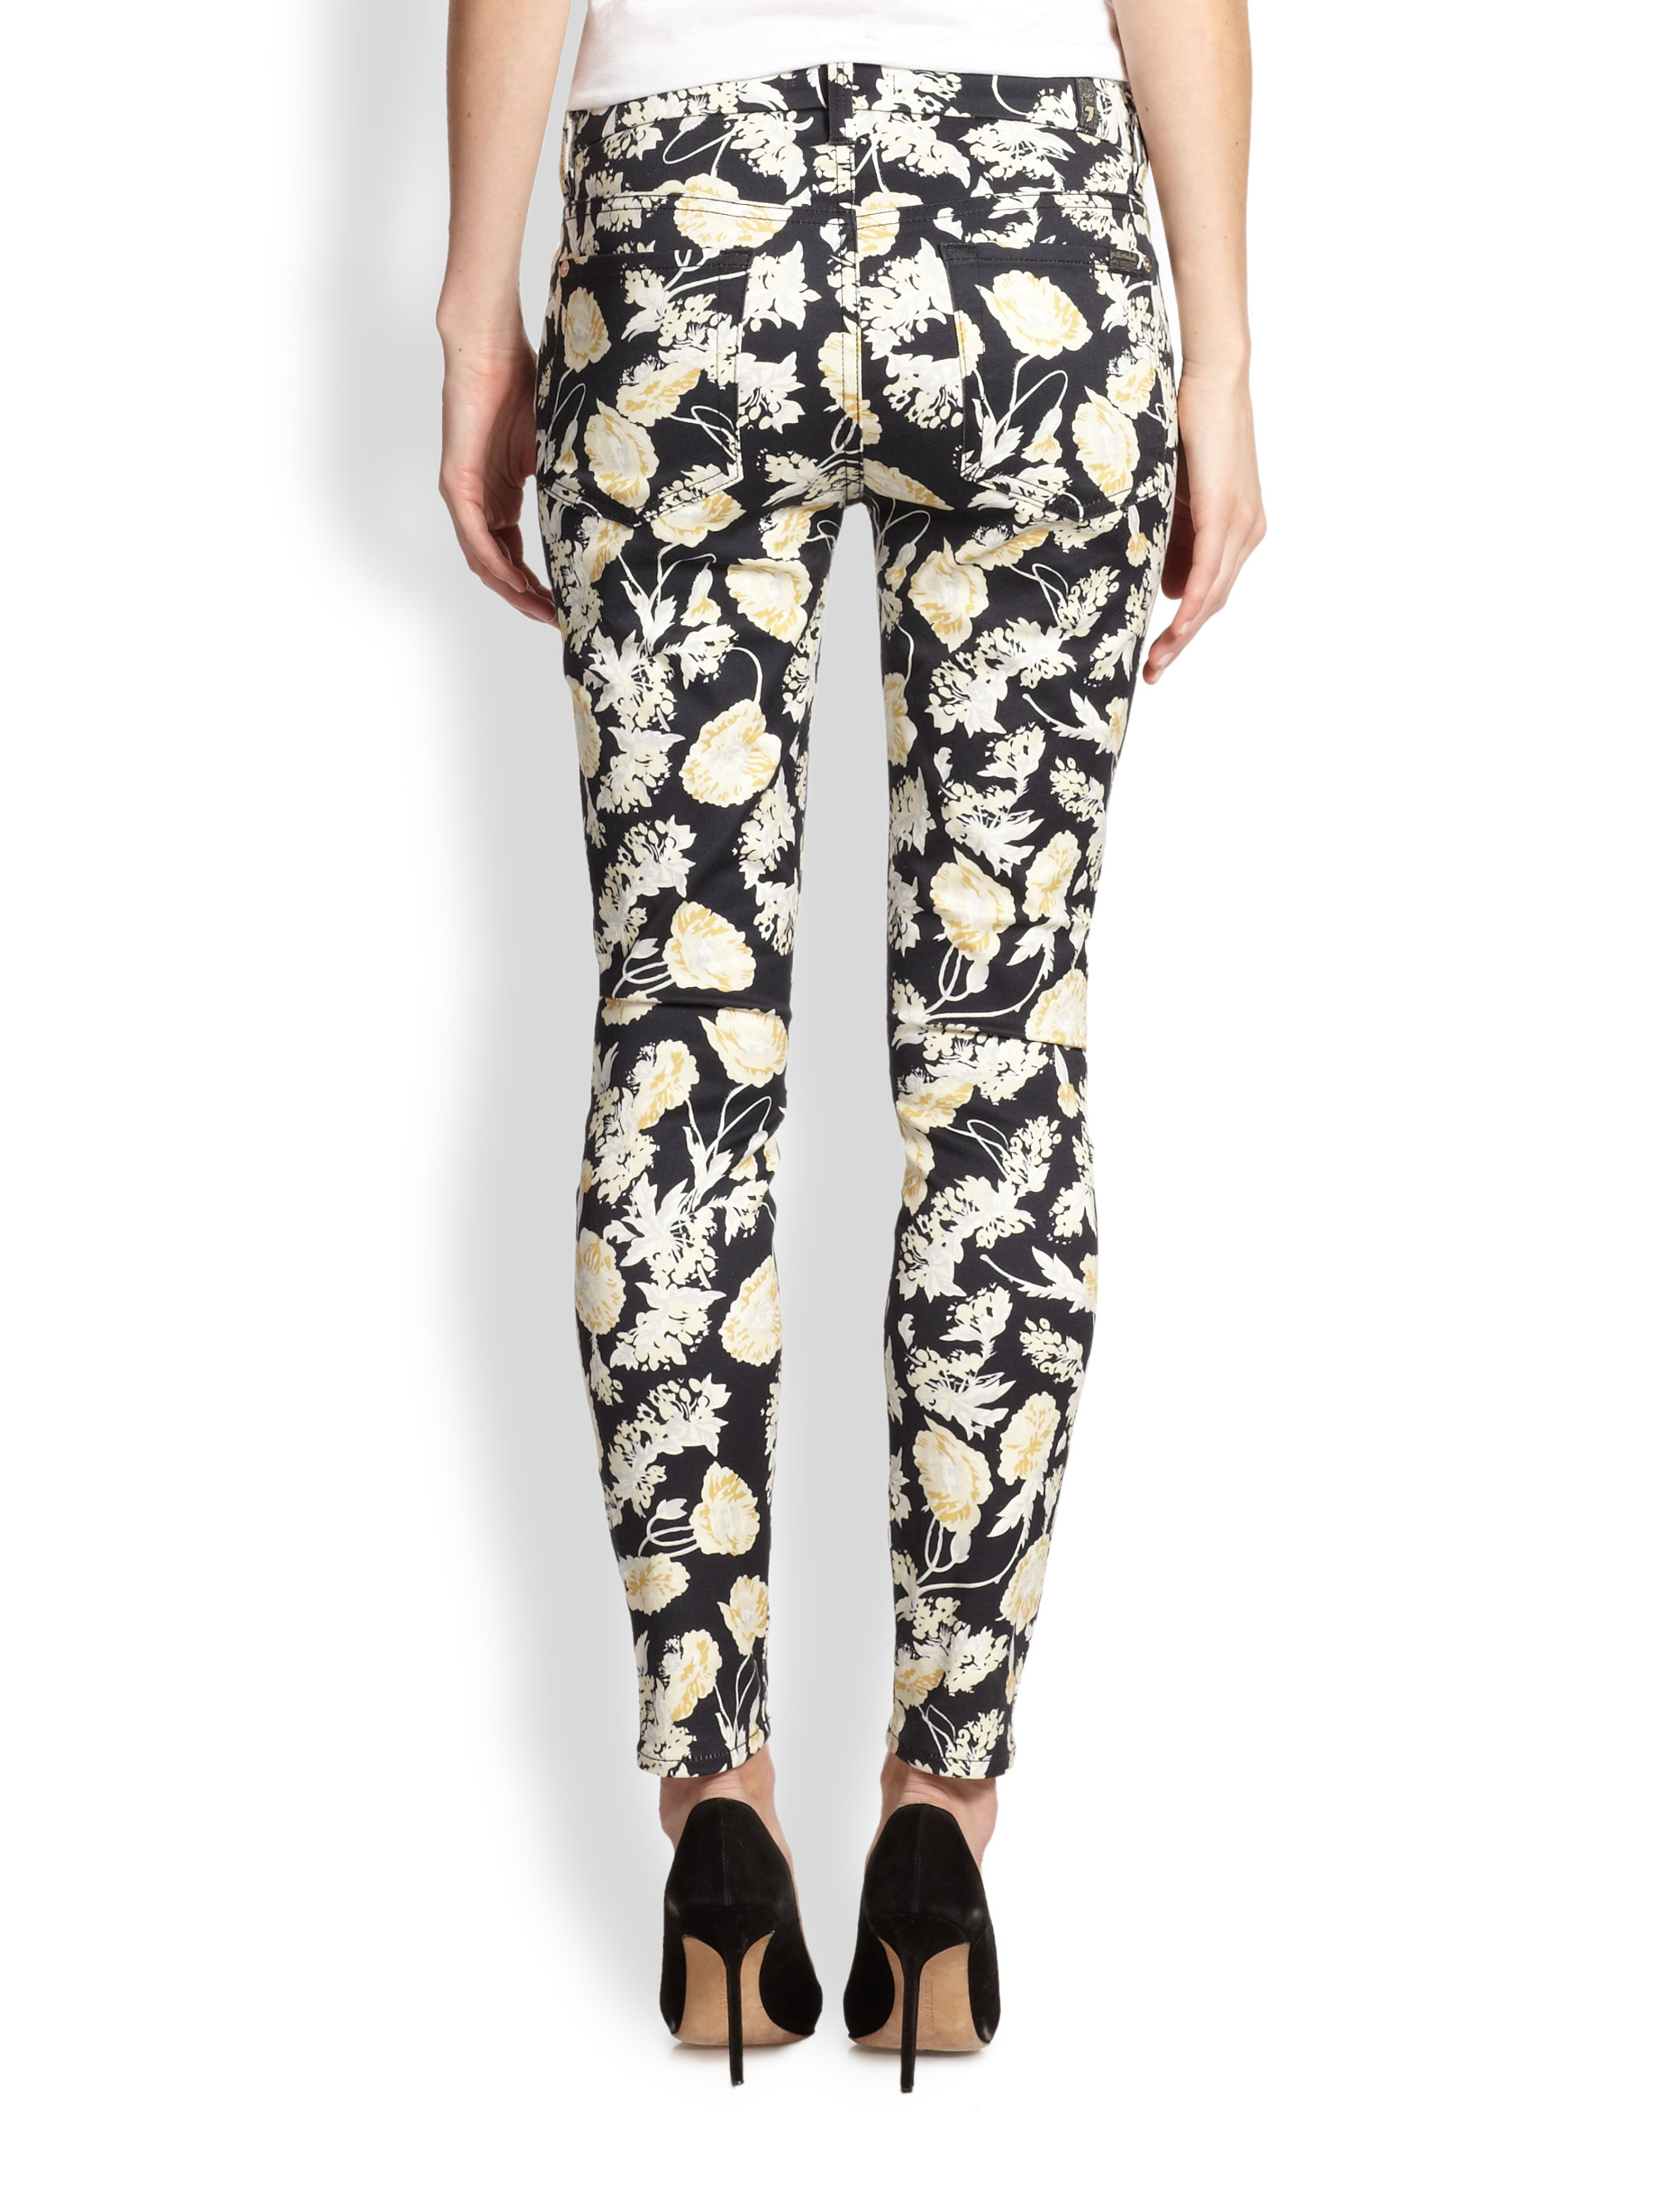 7 for all mankind Skinny 28 Floral Print Jeans in Black | Lyst